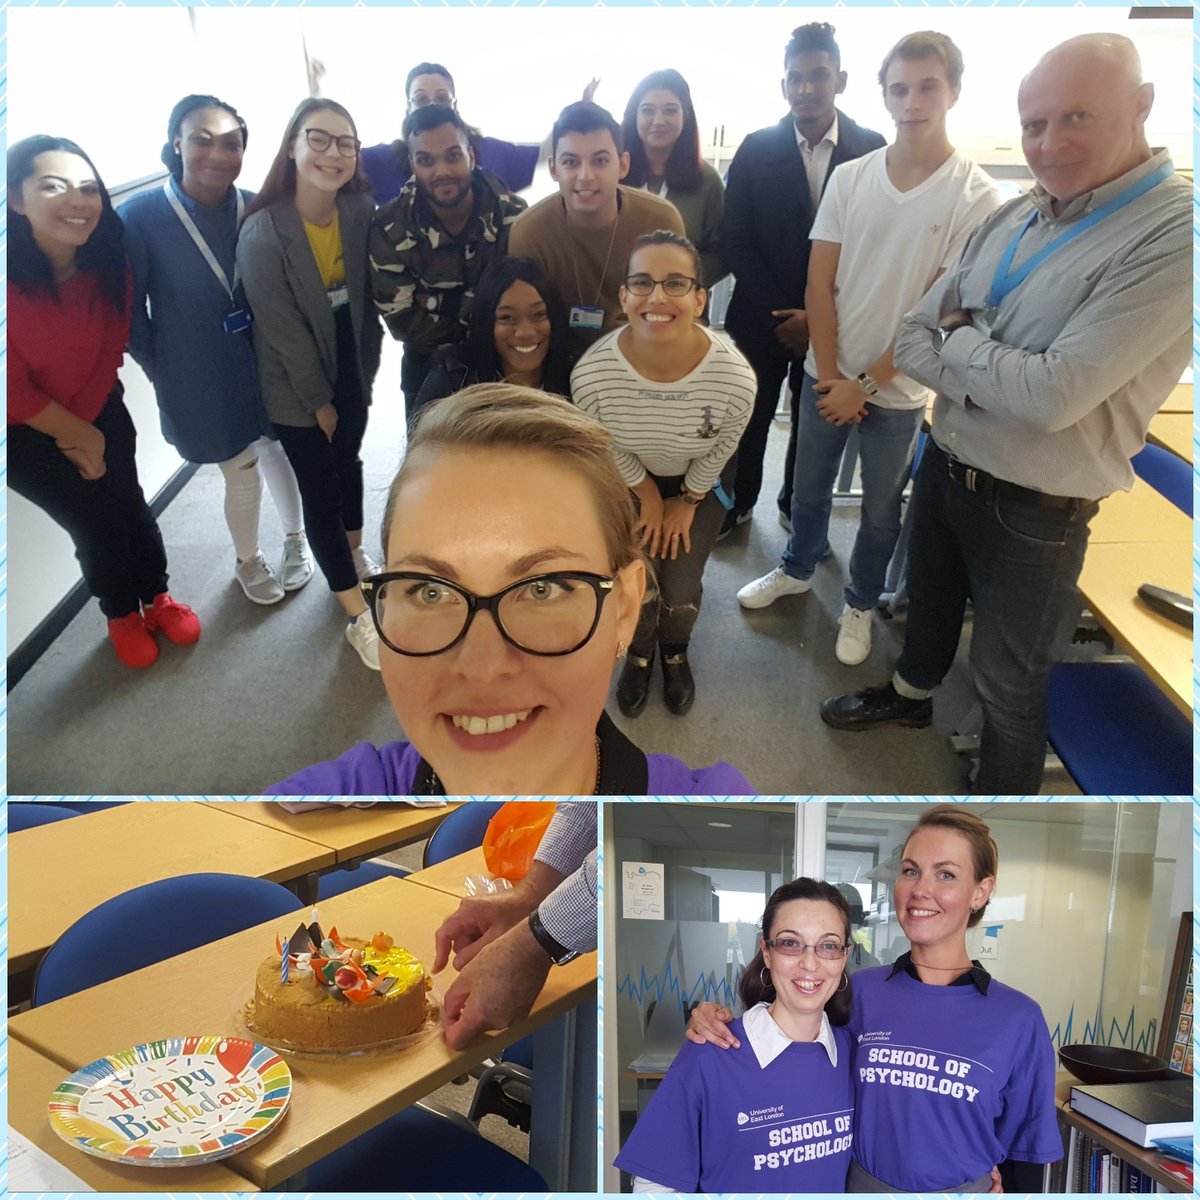 What a special day! Celebrating the birth of Bsc Business Psychology and a birthday of our one and only Mark Holloway! #businesspsychology <br>http://pic.twitter.com/iOyjkEUy4b